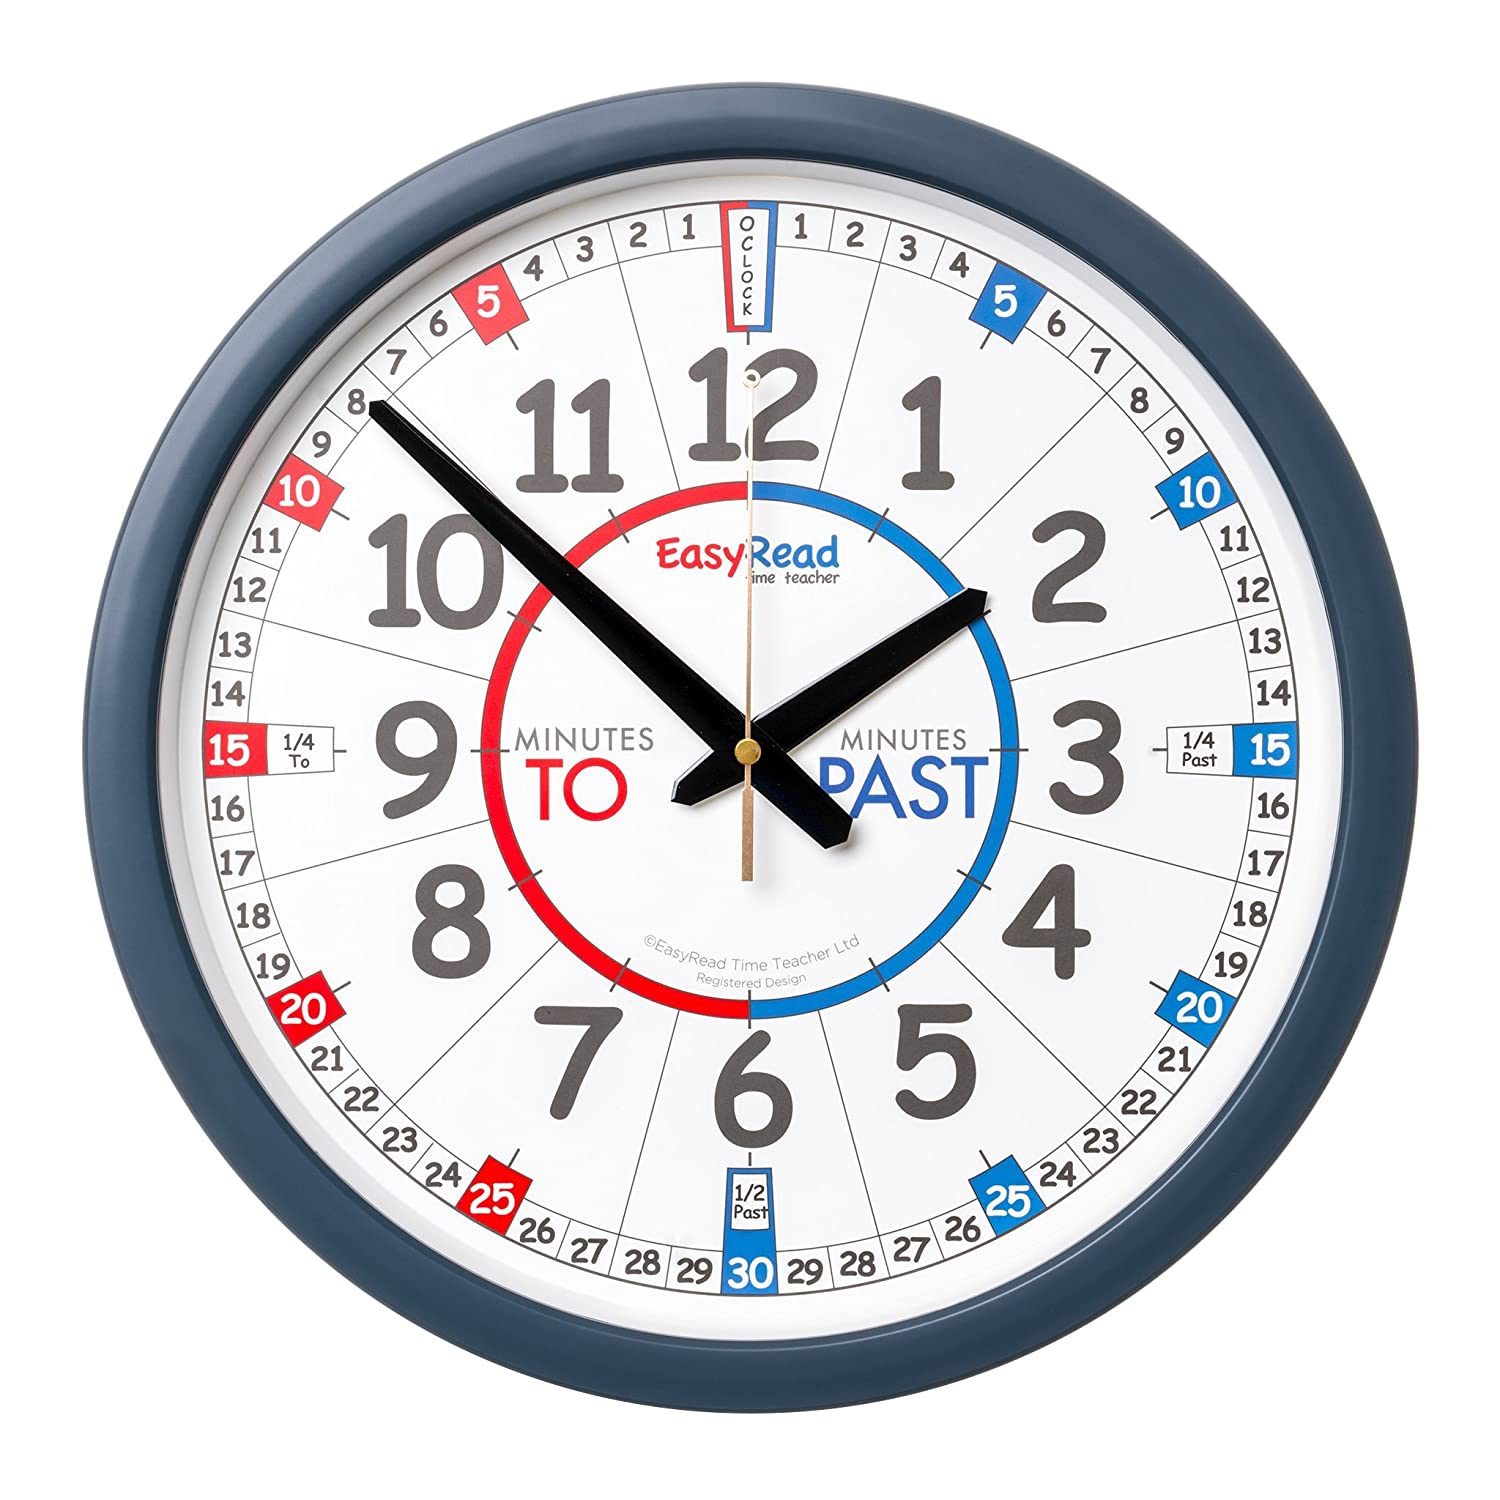 EasyRead Time Teacher Childrens Wall Clock with simple 3-Step Teaching System using minutes past /& minutes to method ages 5-12 14 dia EasyRead Time Teacher Ltd ERCC-EN 14 dia learn to tell the time